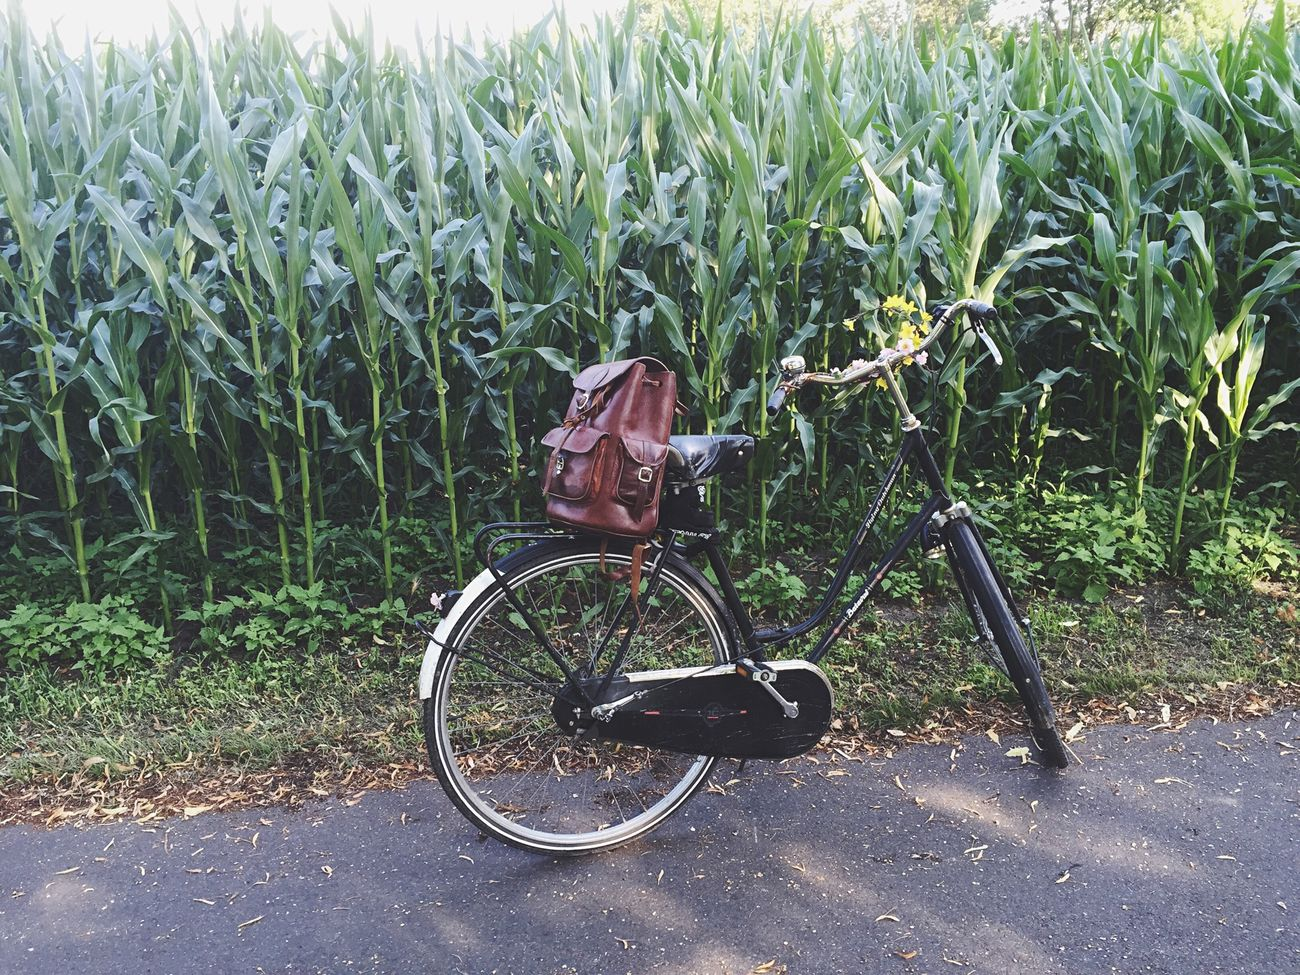 Beautiful stock photos of music festival, Bag, Bicycle, Day, Field